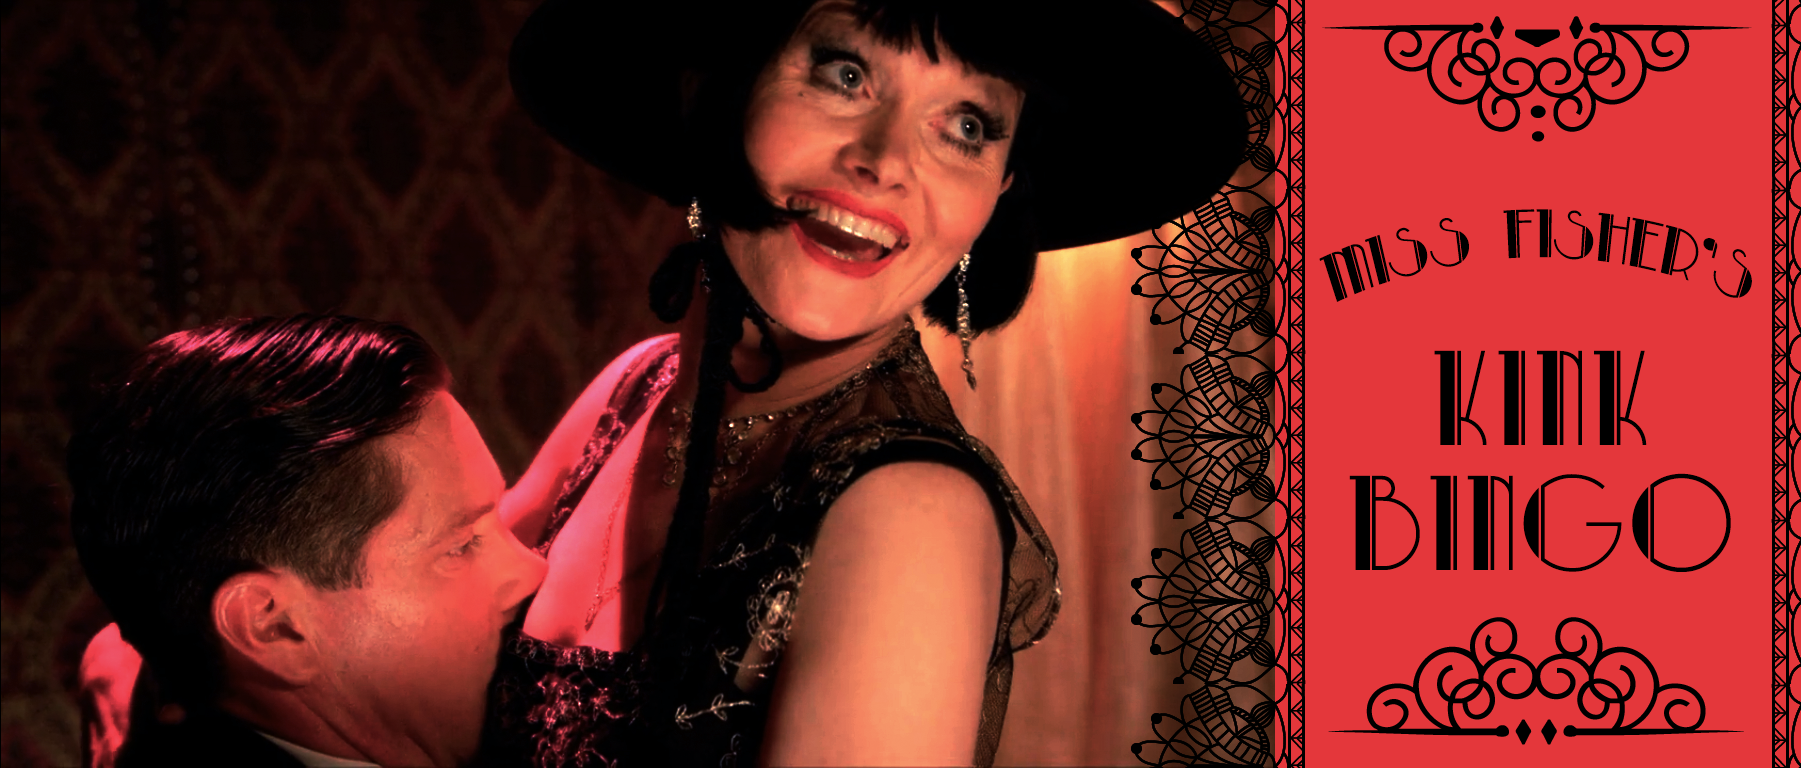 header with a screencap of Phryne and Jack and text Miss Fisher's Kink Bingo